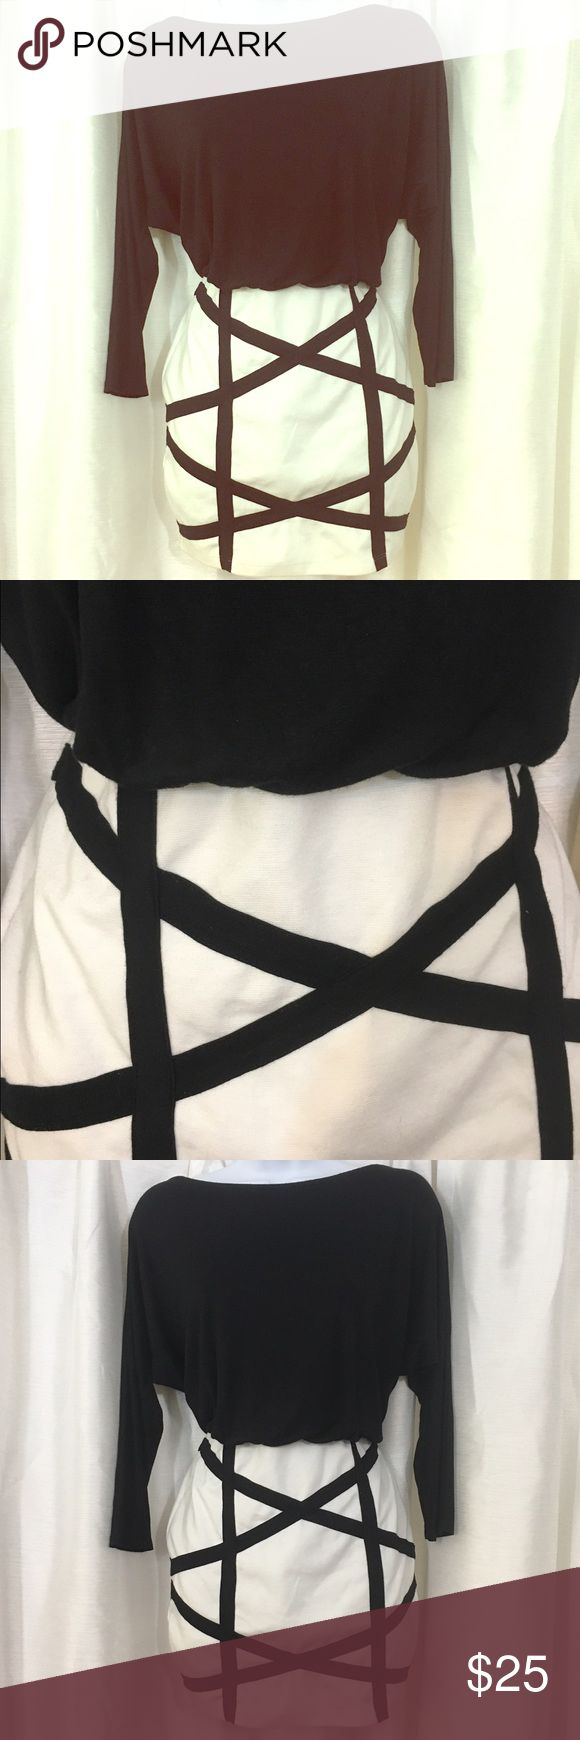 """LuLus Slouchy Top Black and White Mini Dress Sz M LuLu*s Black and White mini dress. Top is slouchy and loose and bottom skirt is fitted. Sz M. Skirt length is 14"""" from waist. Lulu's Dresses Mini"""